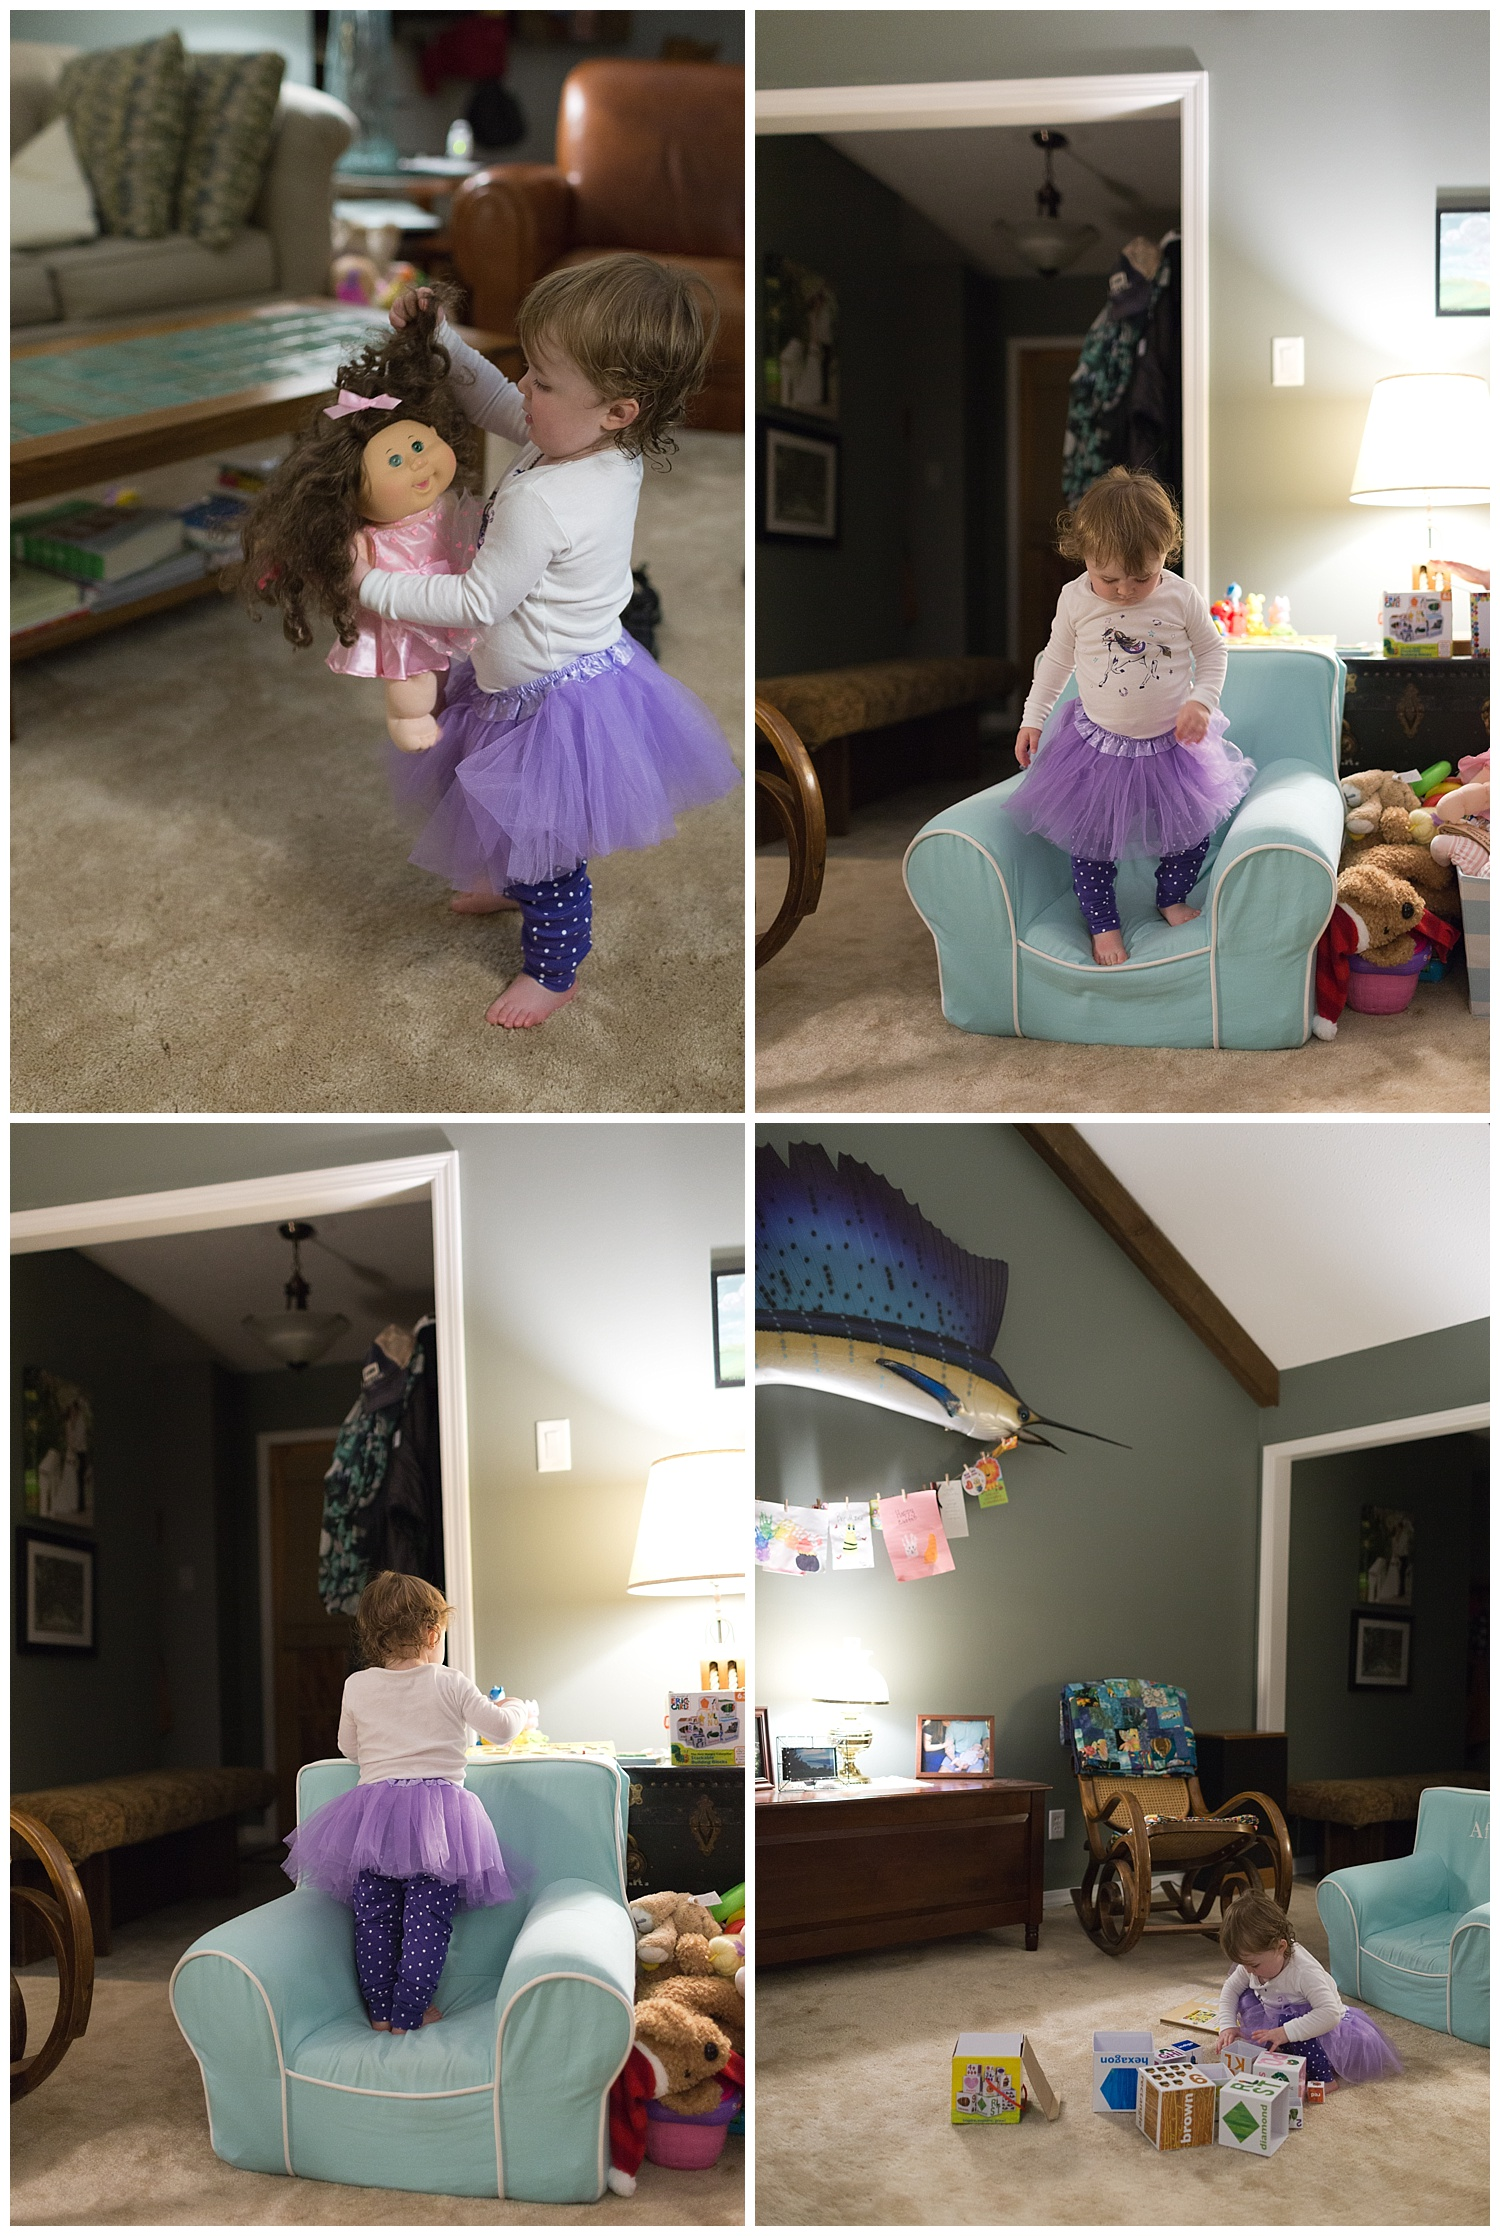 little girl in purple tutu with Cabbage Patch doll